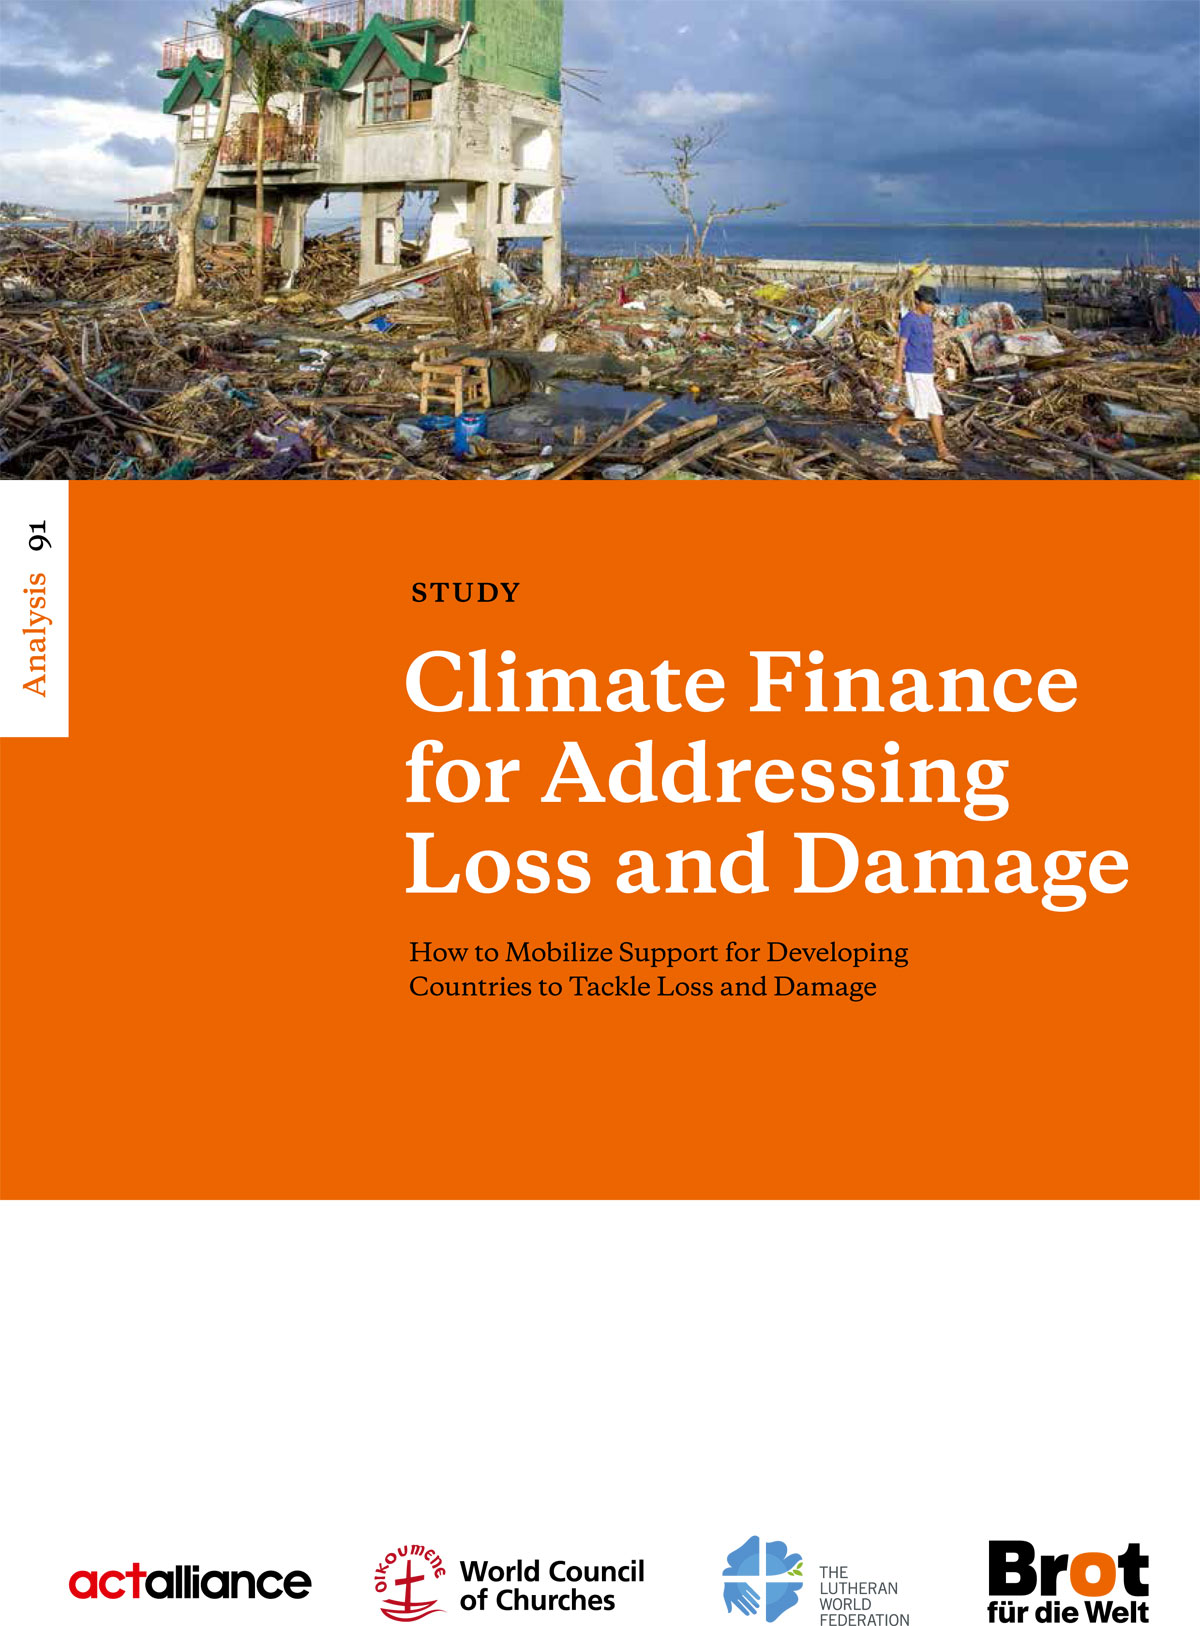 Climate Finance for Addressing Loss and Damage